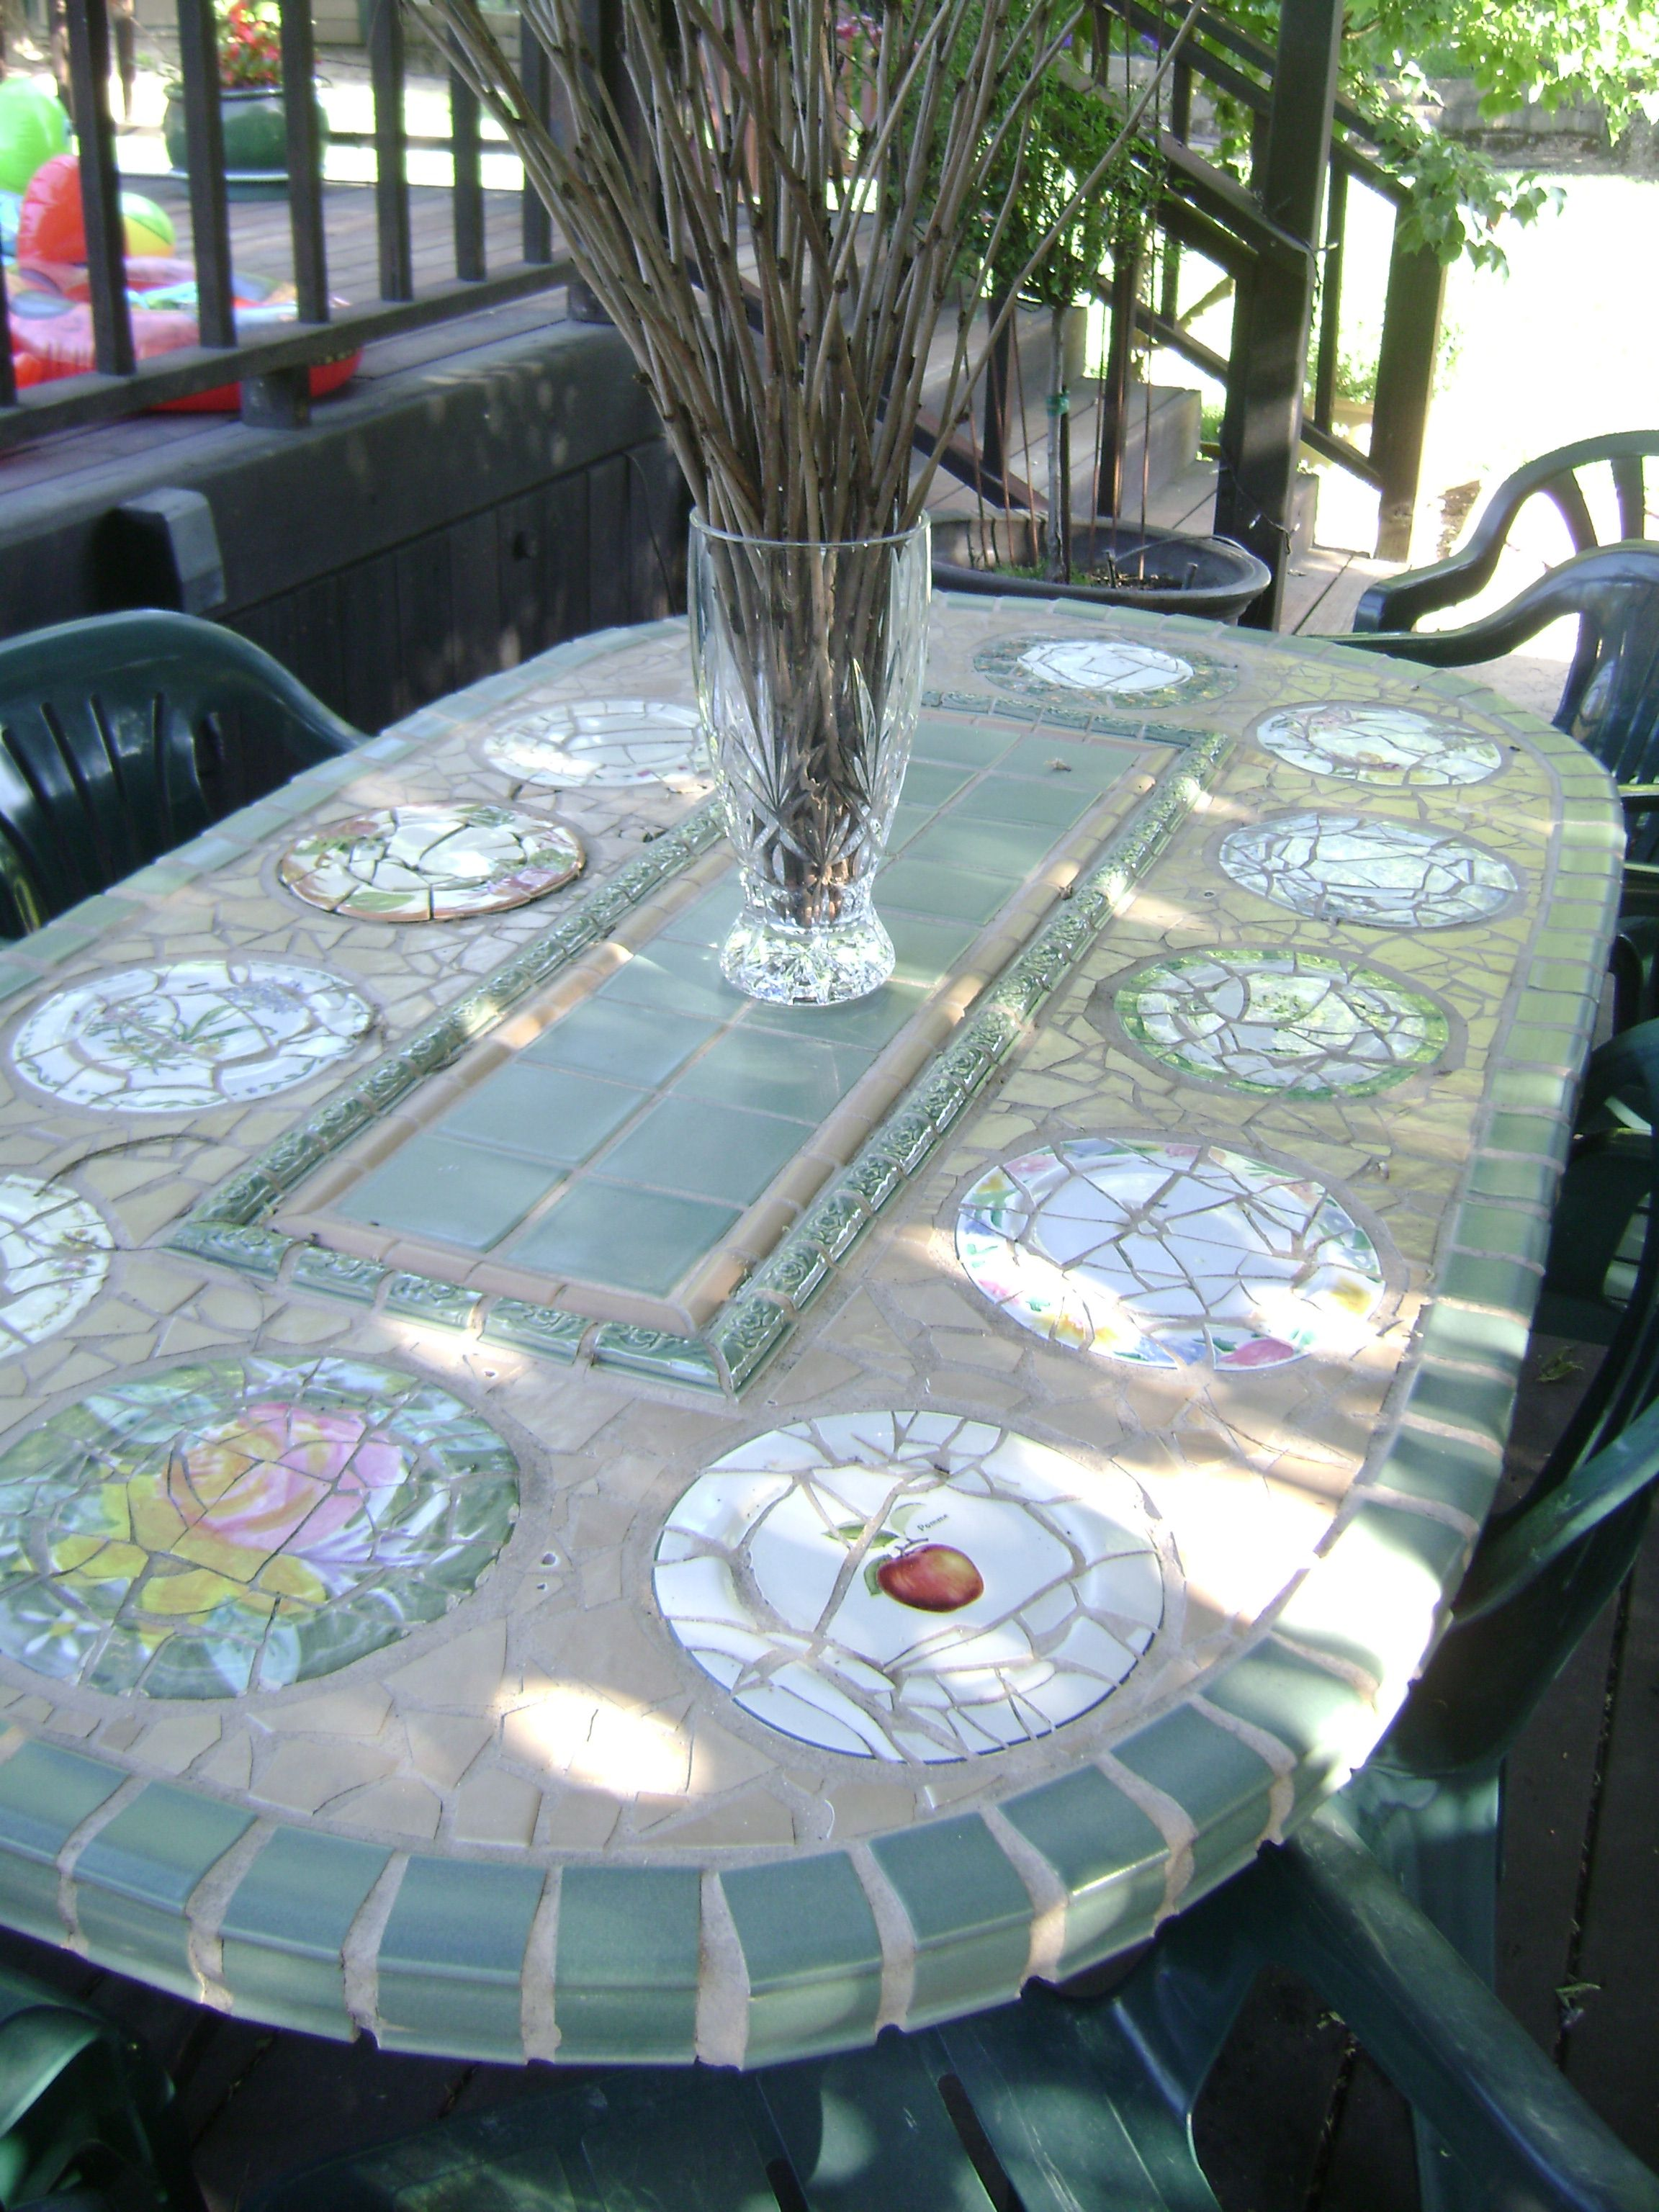 Mosaic Patio Table I Made From Iron Table Legs I Got At Yard Sale